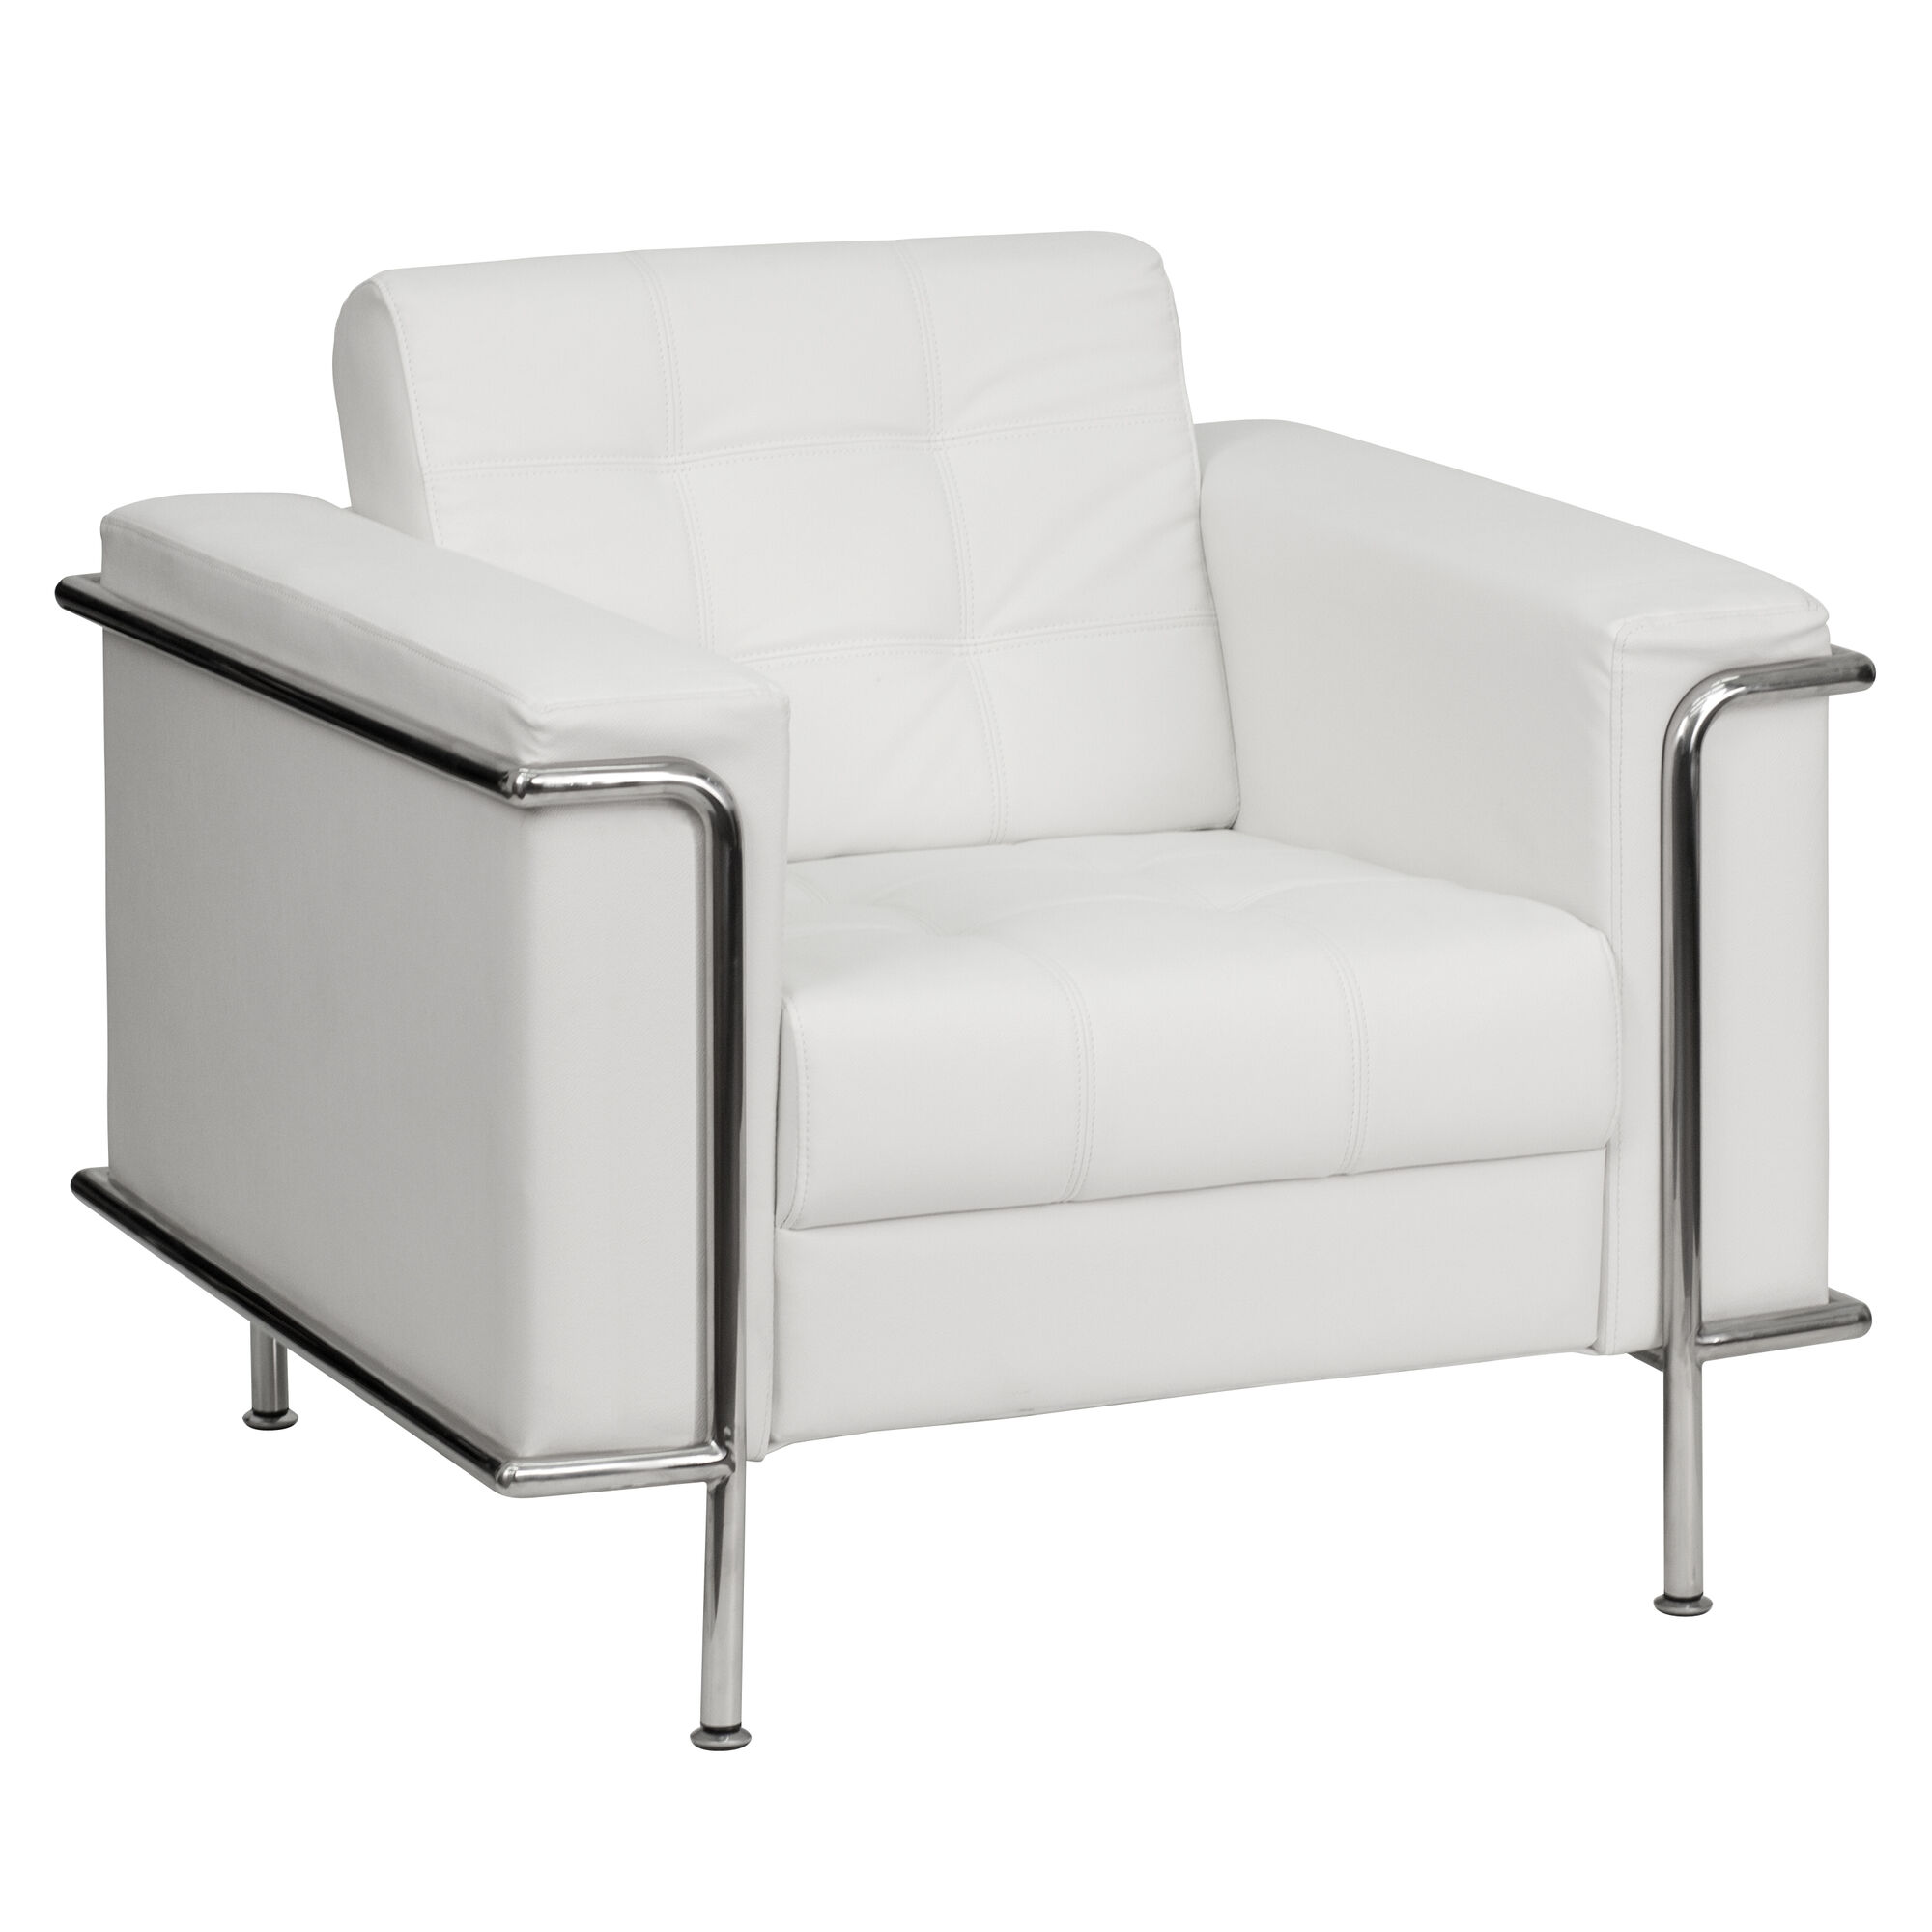 white leather armchairs sale white leather chair zb lesley 8090 chair wh gg 21971 | FLASH FURNITURE ZB LESLEY 8090 CHAIR WH GG MAIN IMAGE